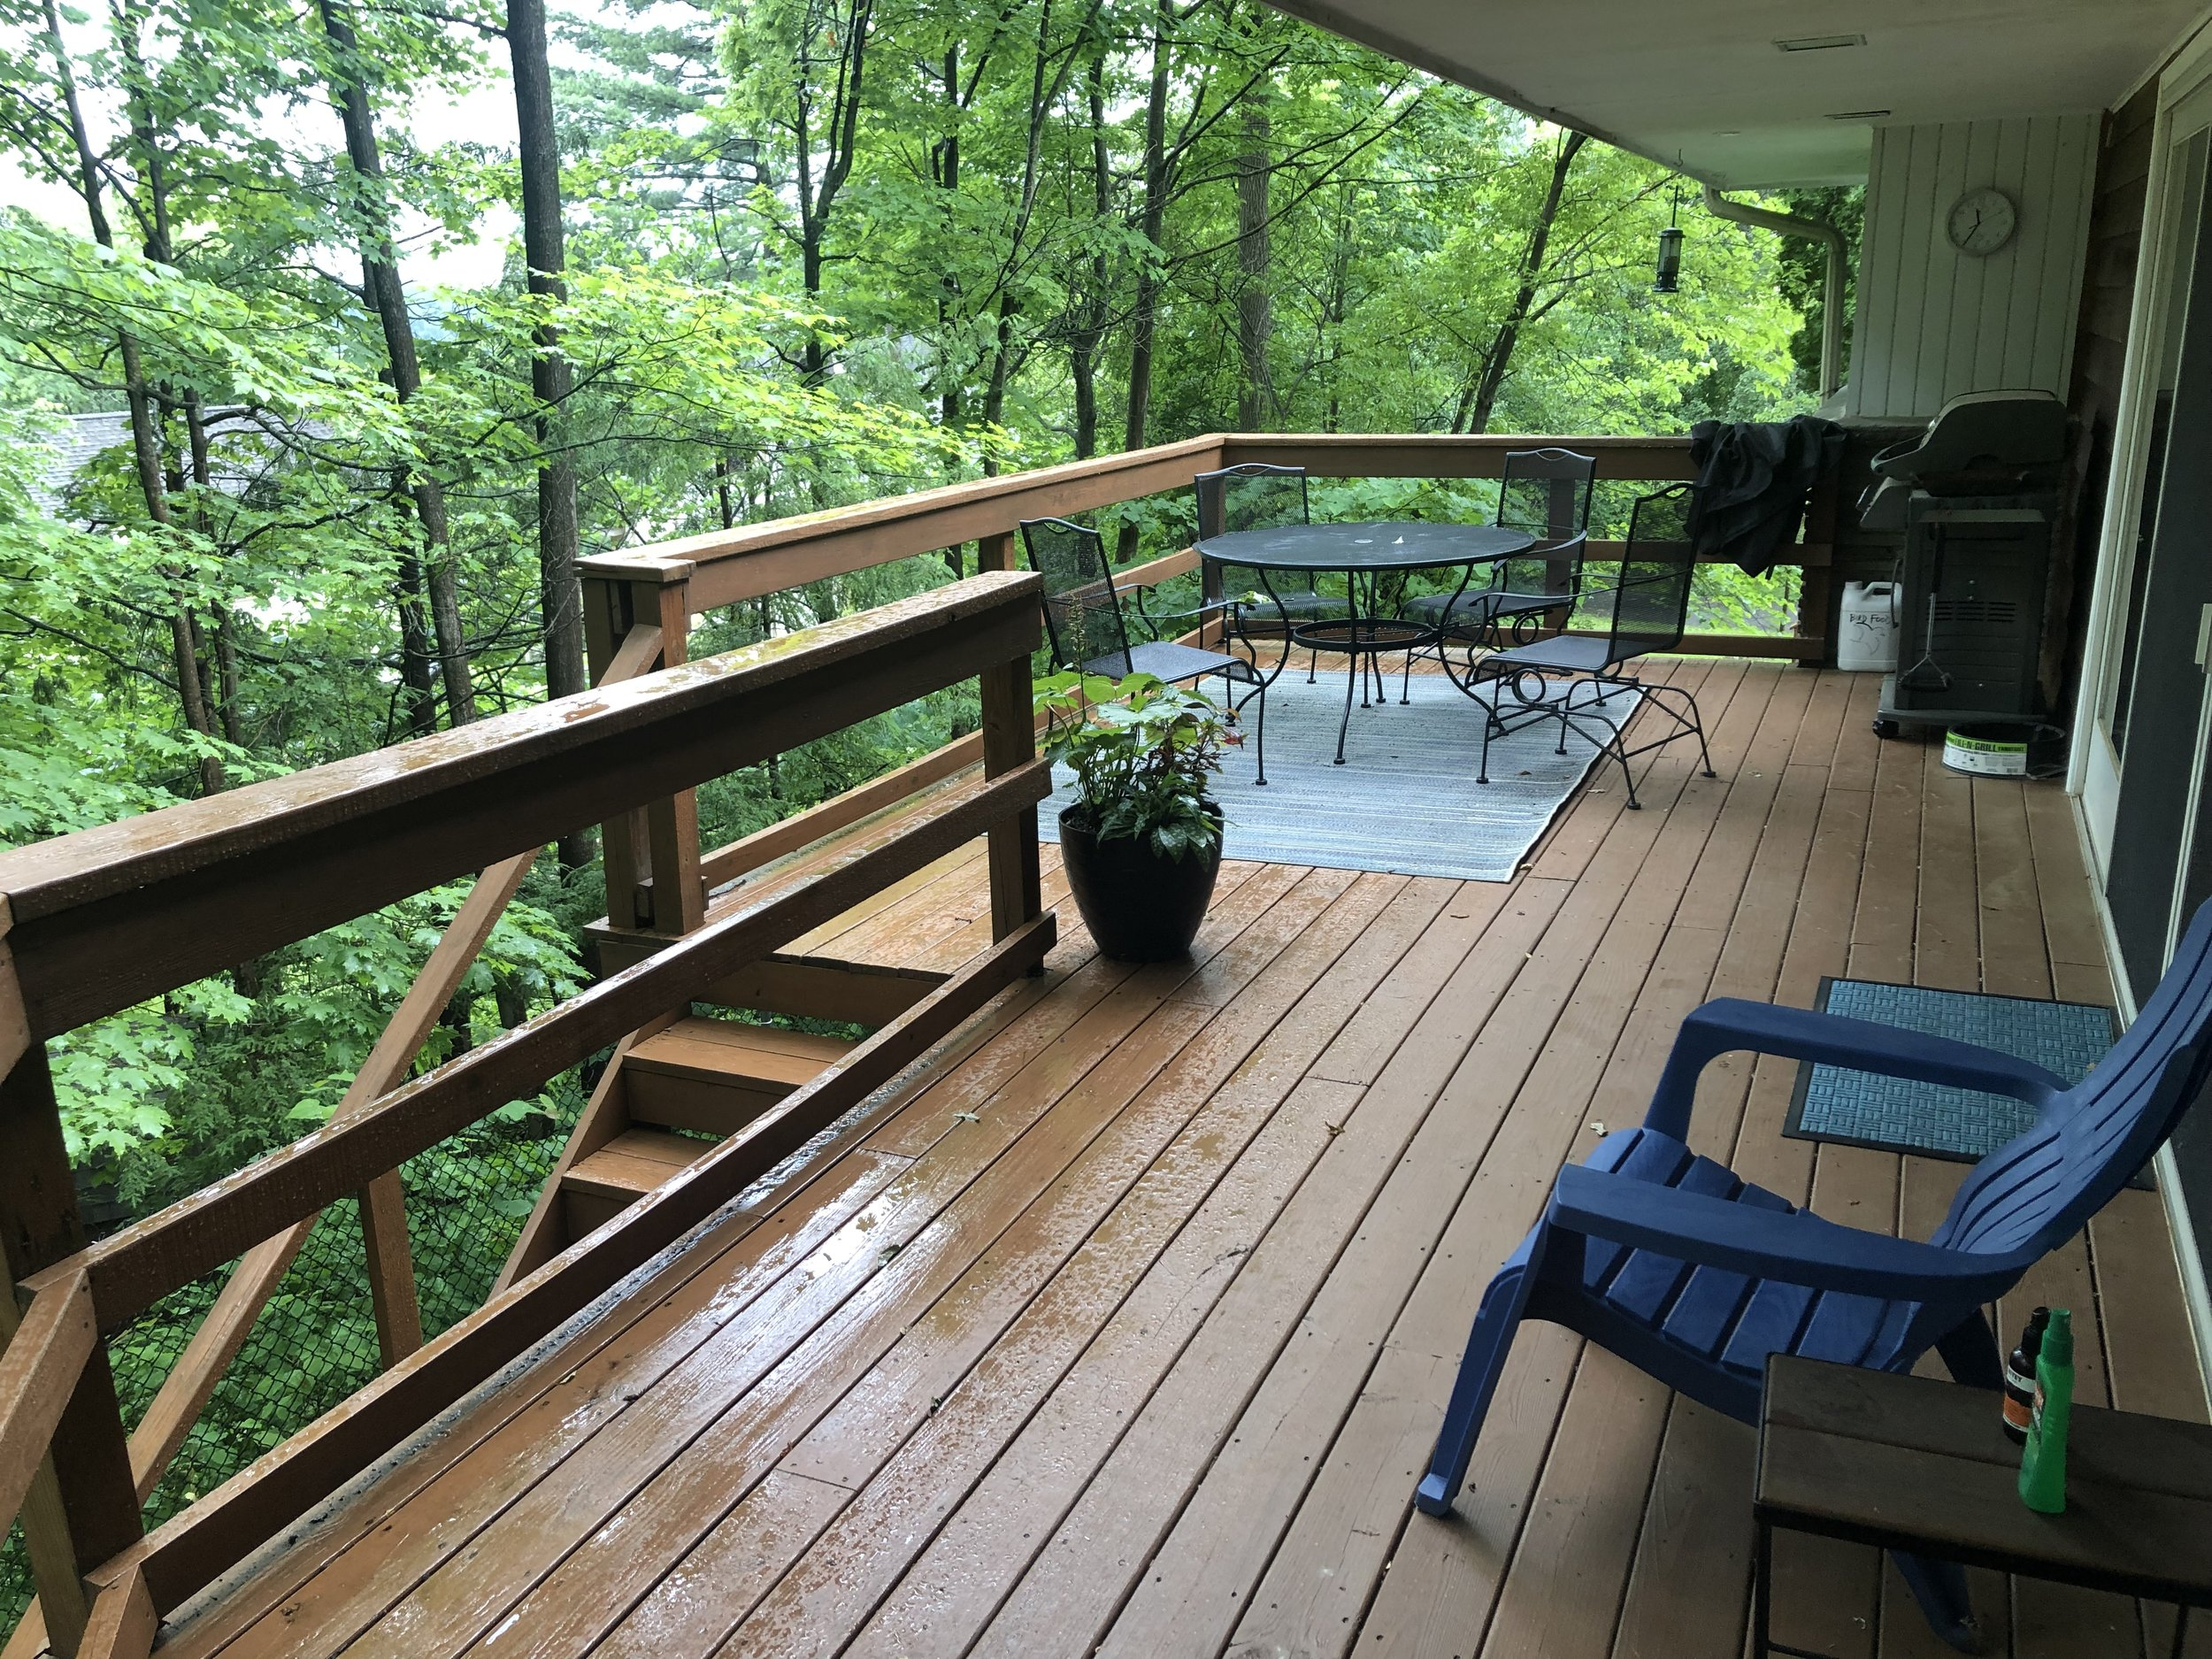 The back deck, with grill